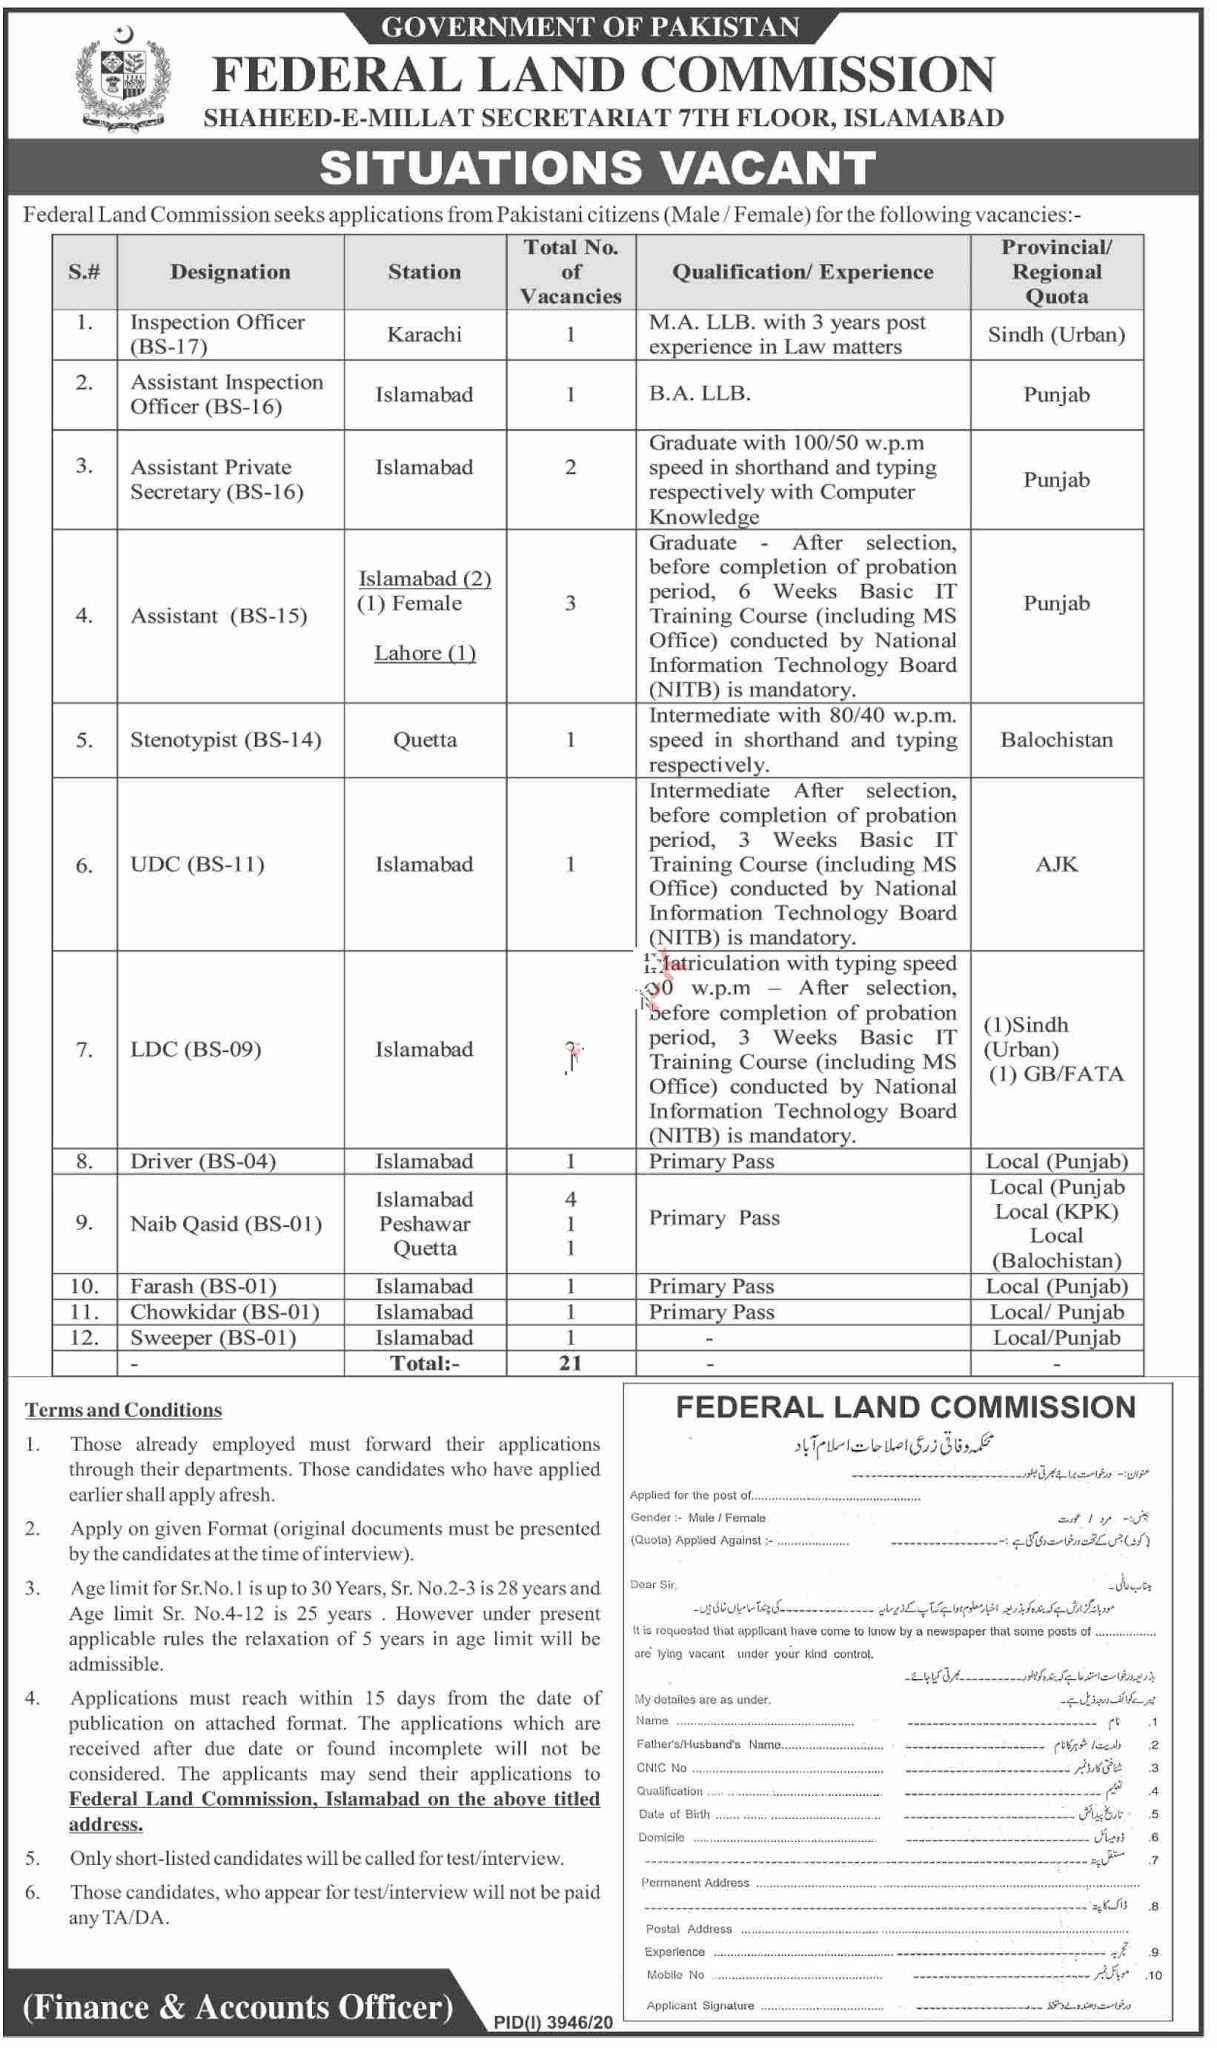 Federal Land Commission Jobs 2021 For Inspection Officer, Assistant Inspection Officer, Stenotypist, UDC, LDC & more